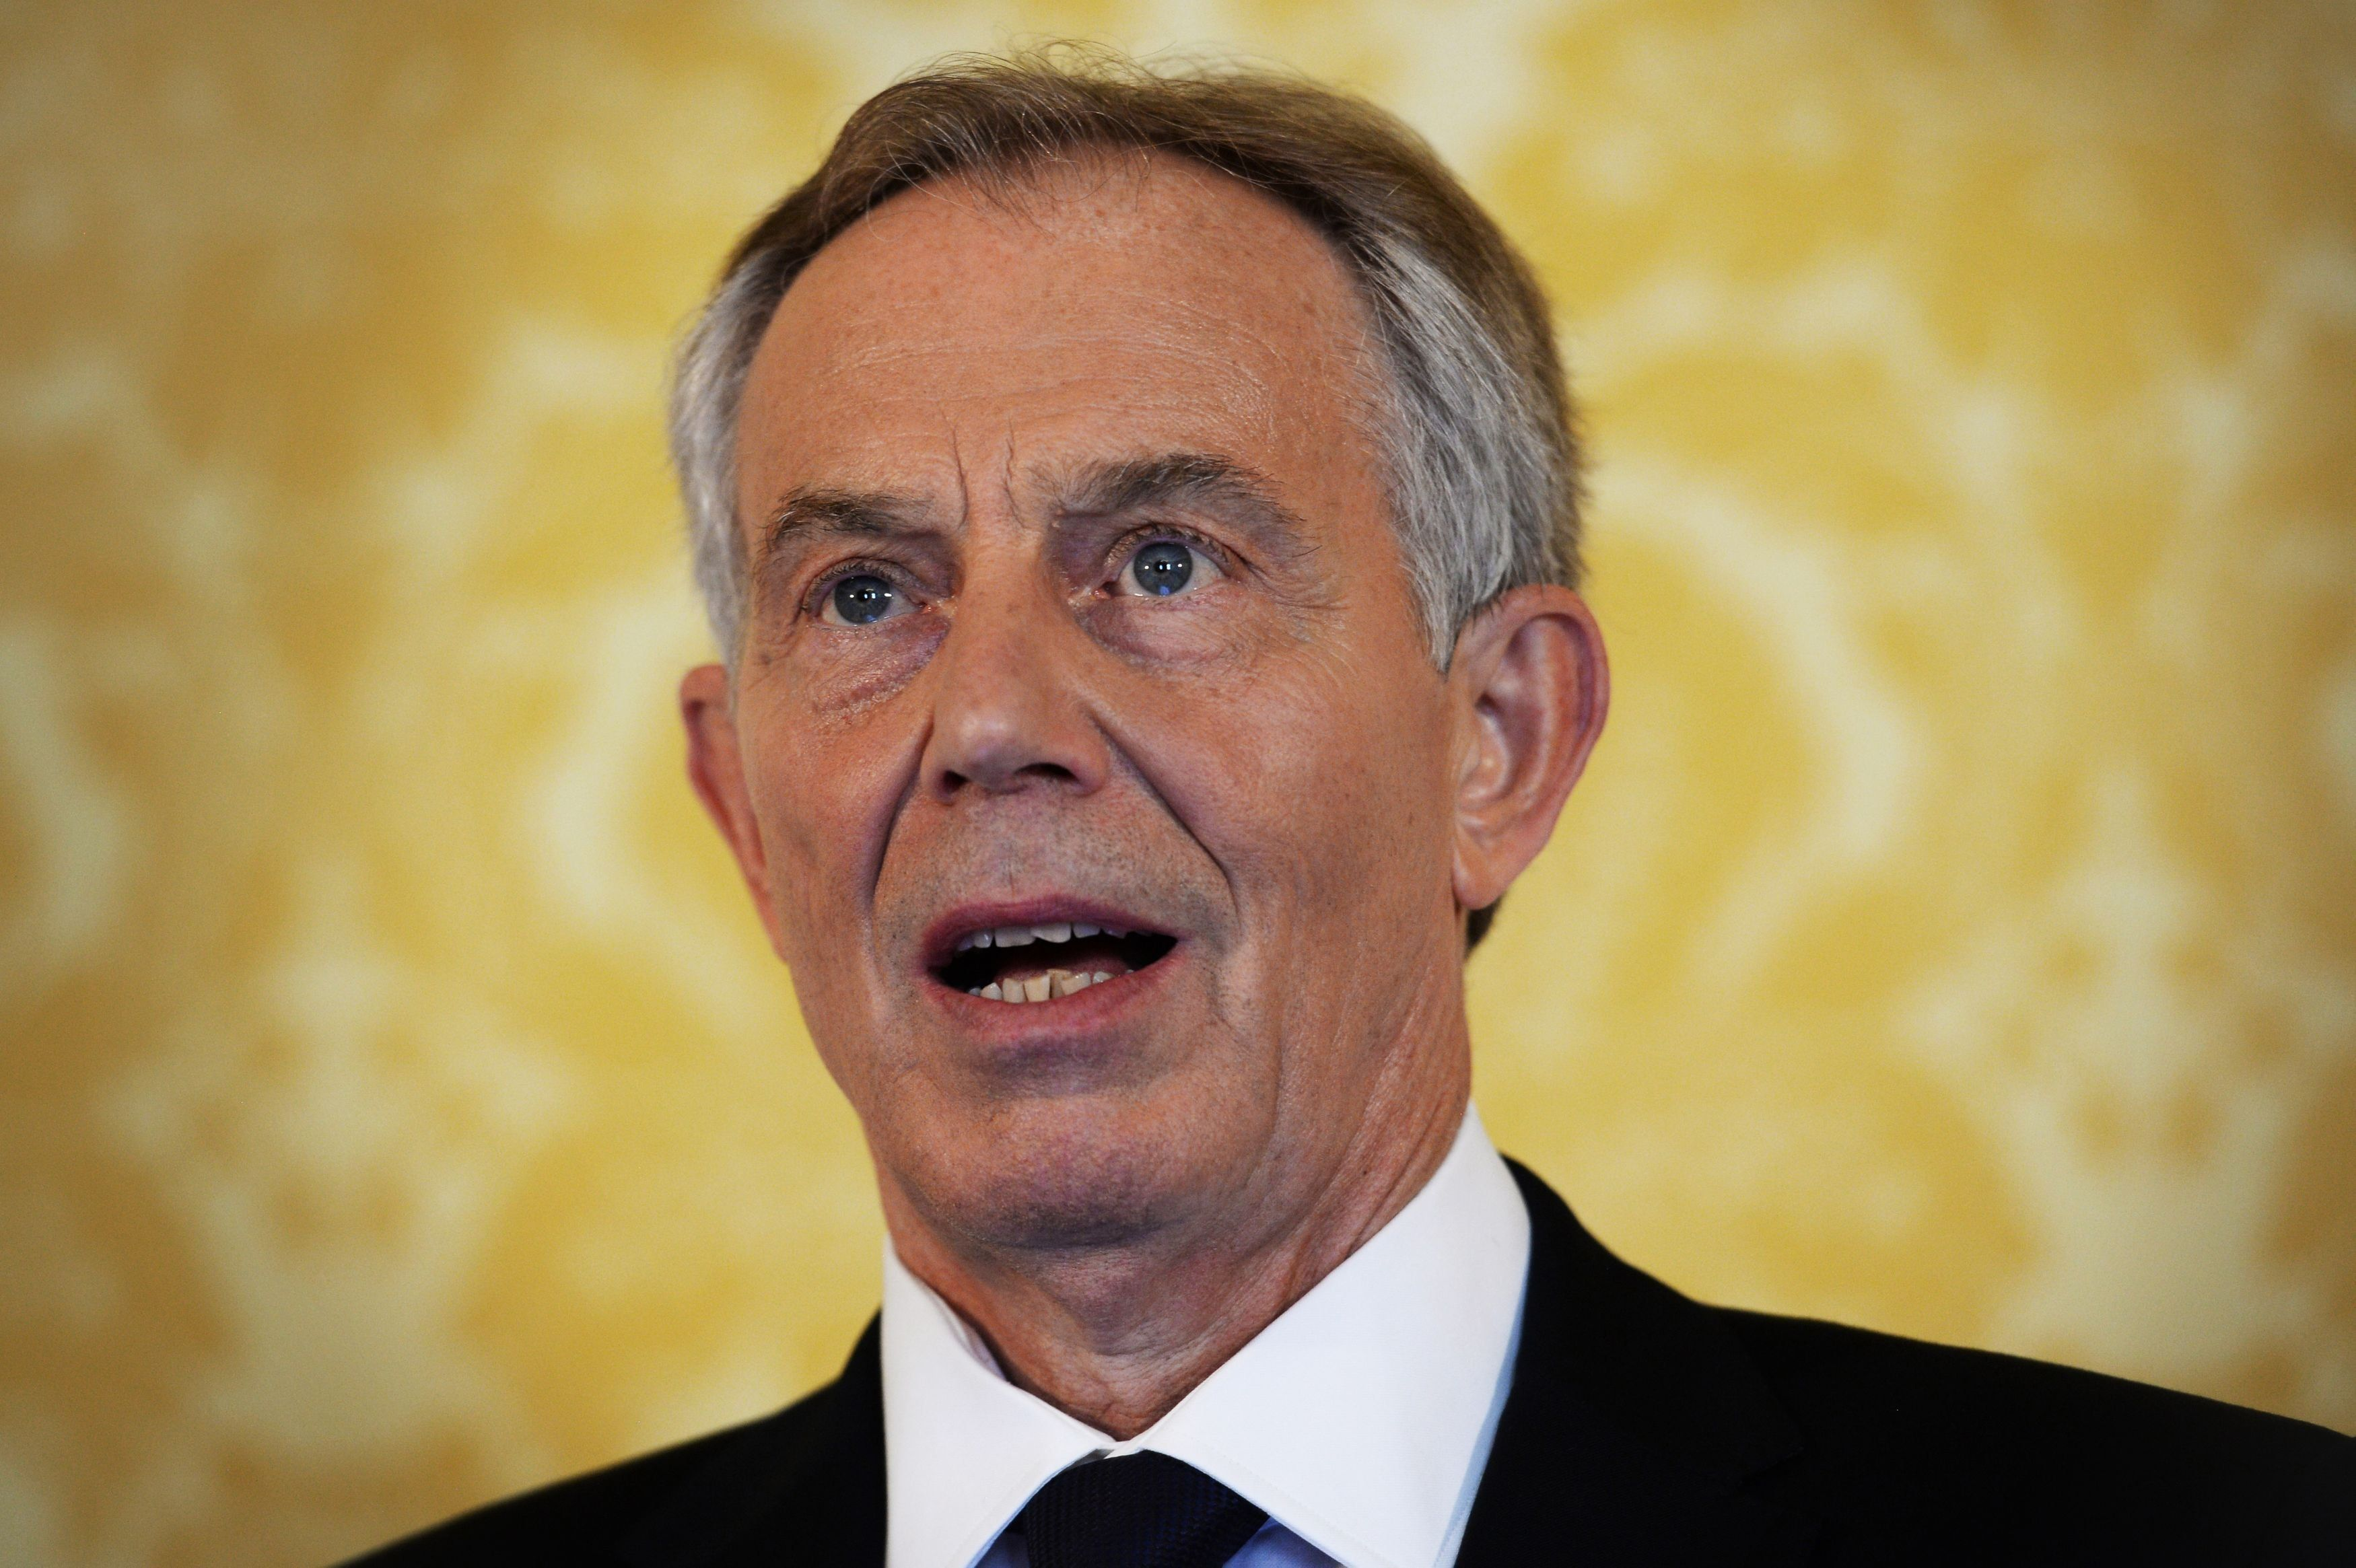 Tony Blair said he was 'very sorry' about the 'ordeal' some soldiers